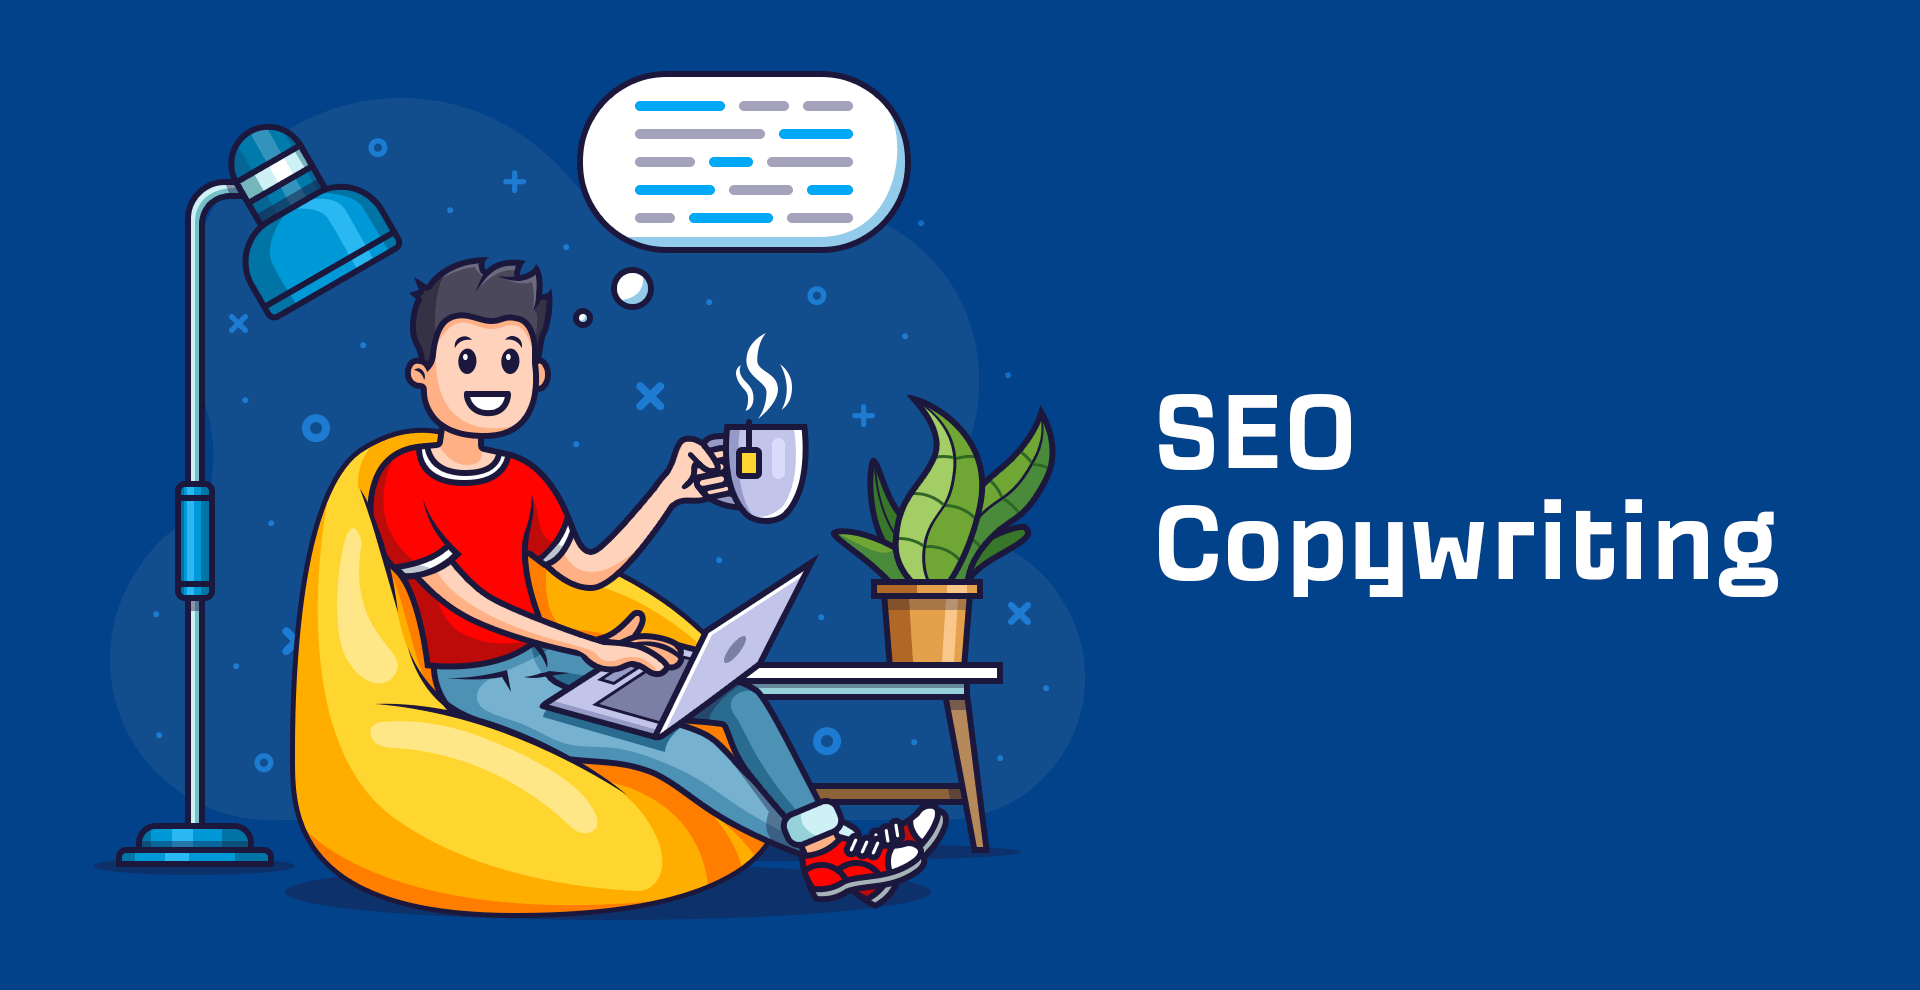 SEO Copywriting: 12 Tips for Better Content and Rankings